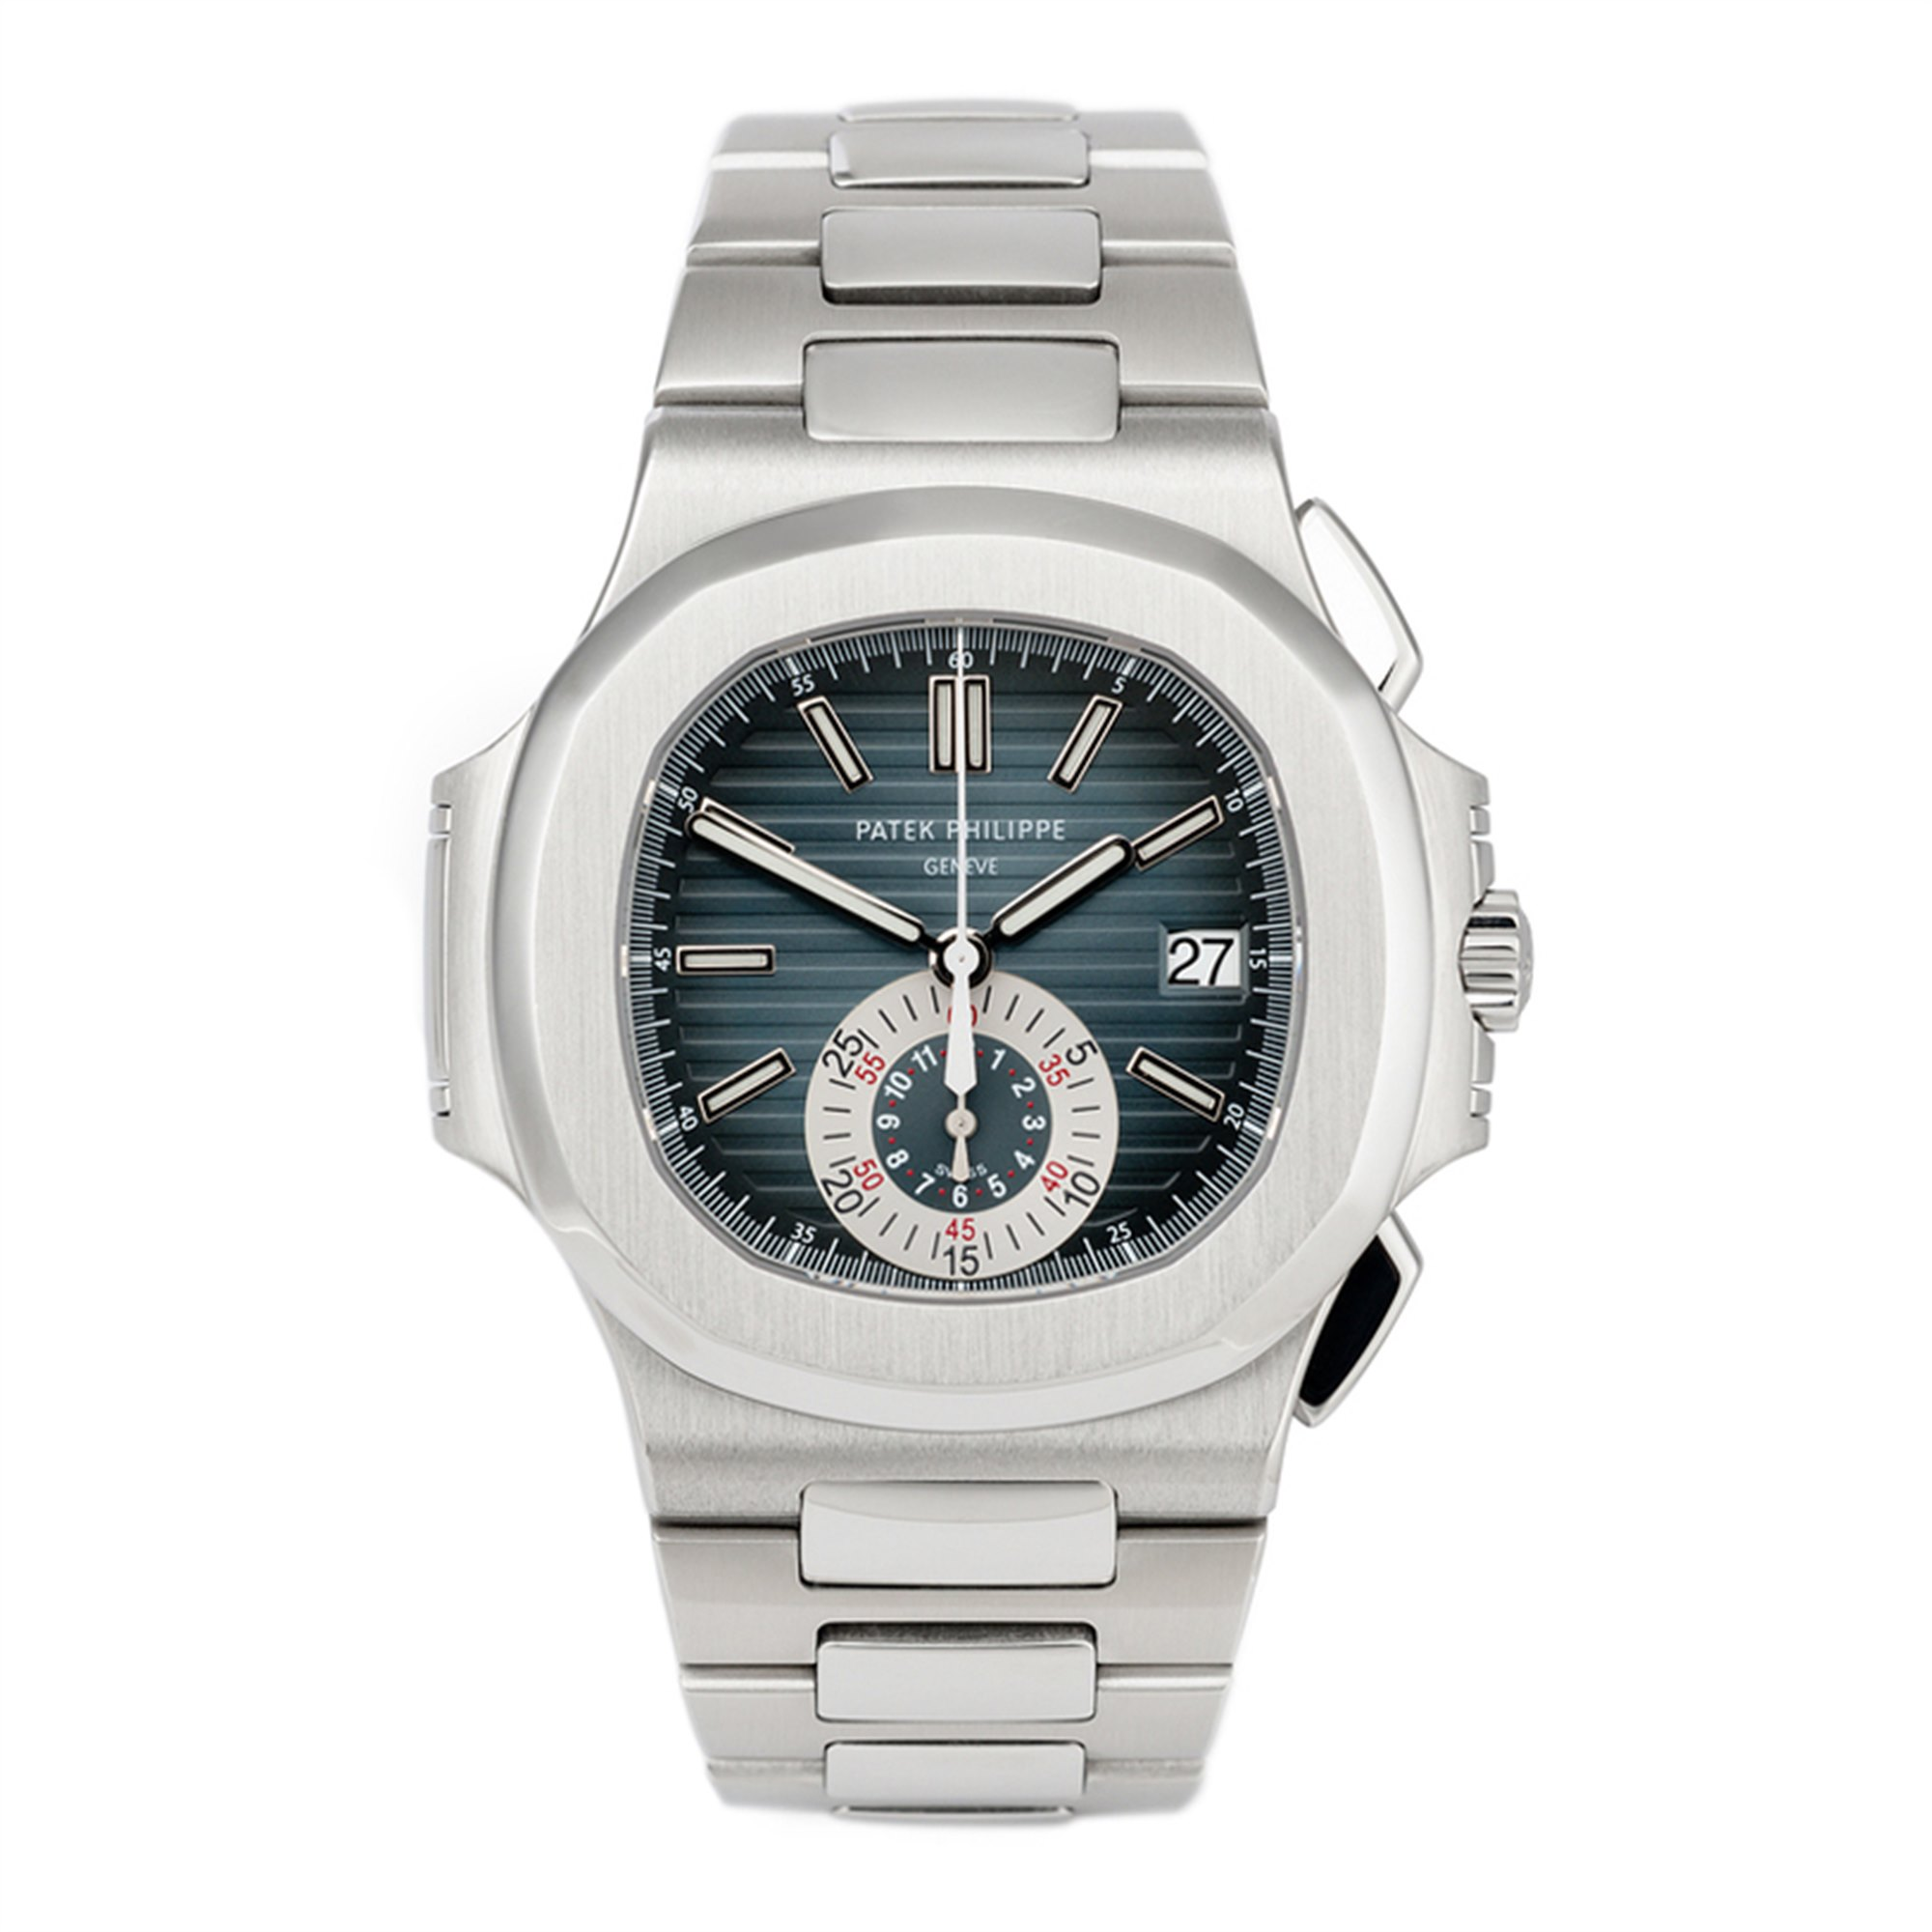 Patek Philippe Nautilus Chronograph Stainless Steel 5980/1A-001